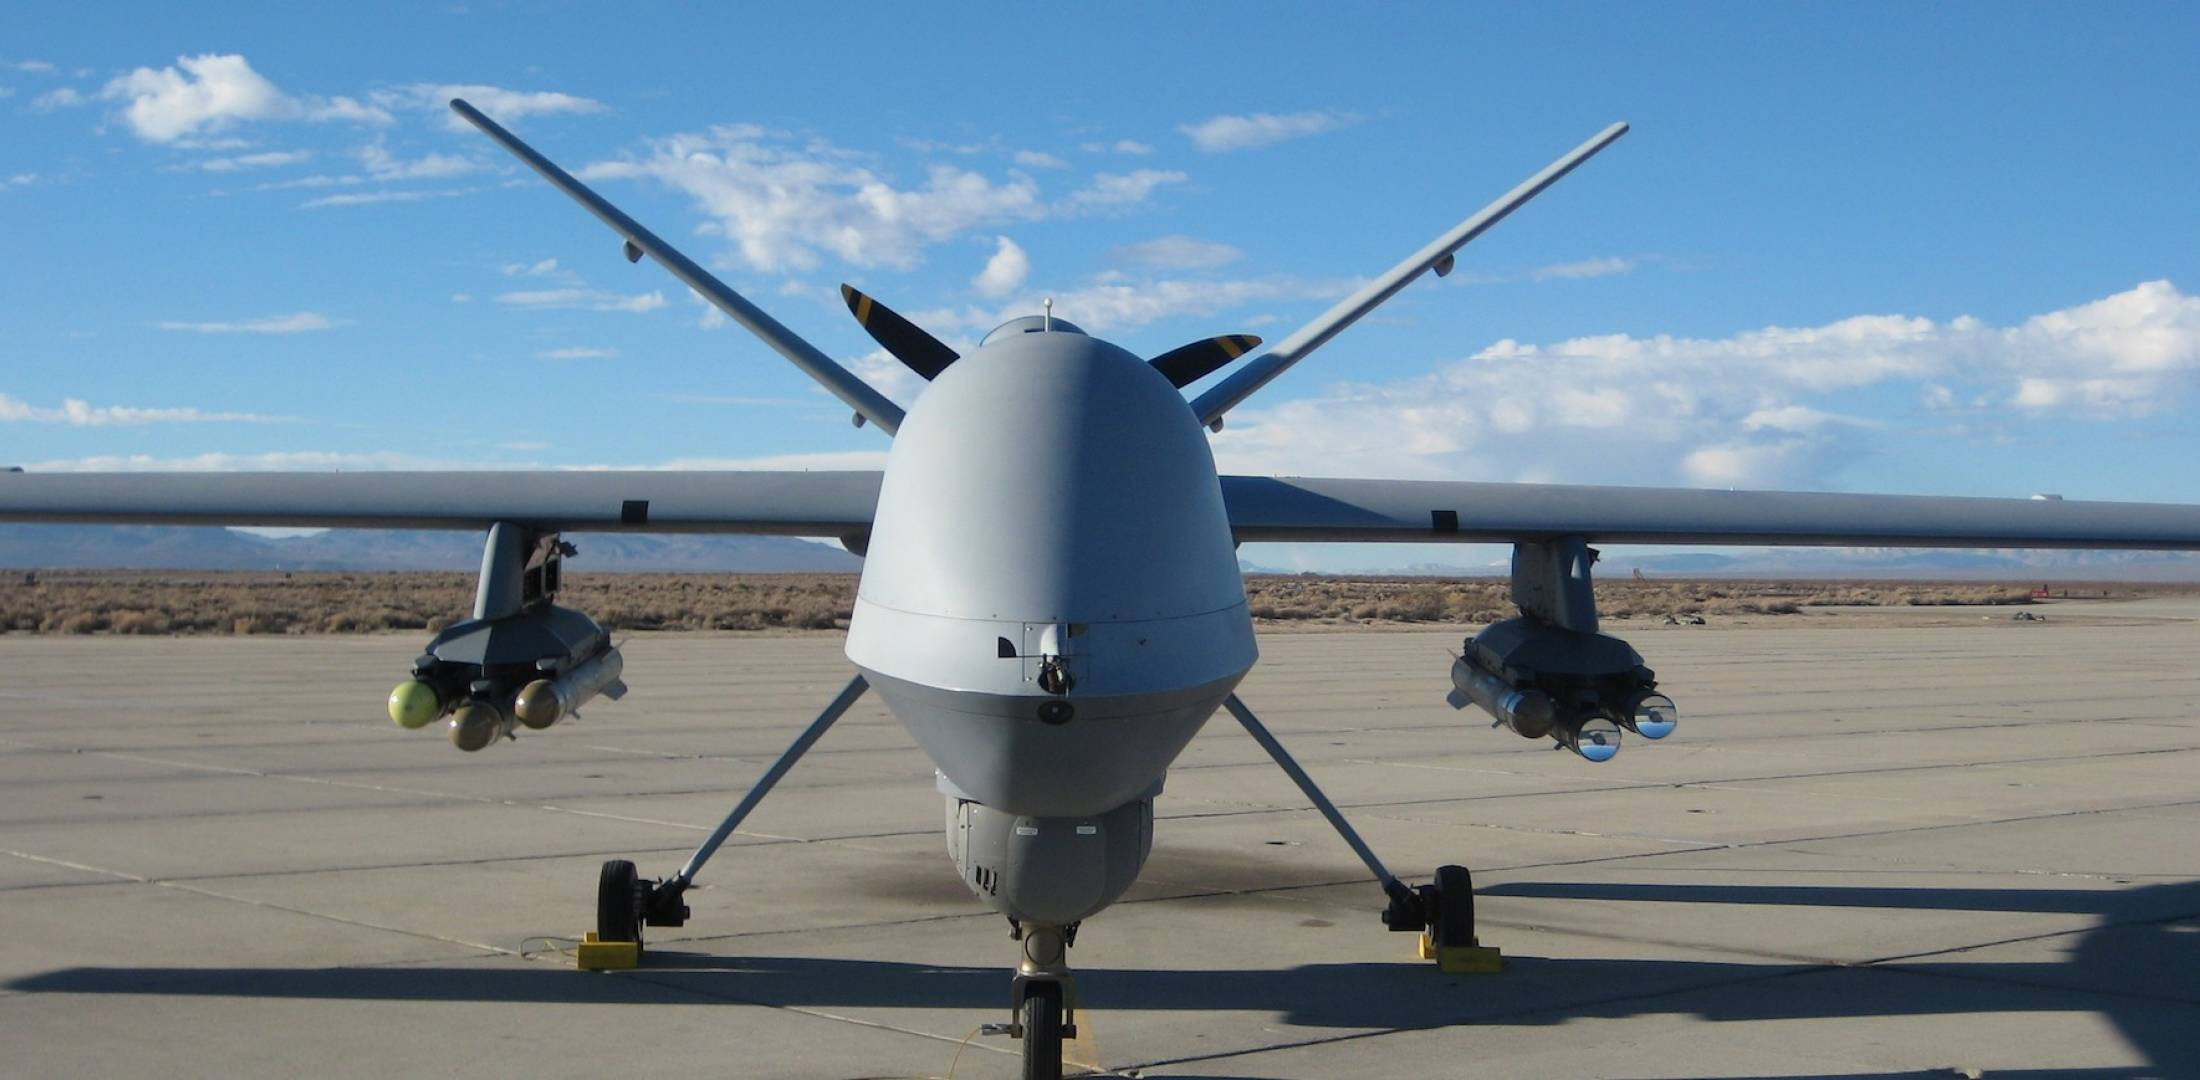 MQ-9 Reaper fitted with dual-mode Brimstone missiles